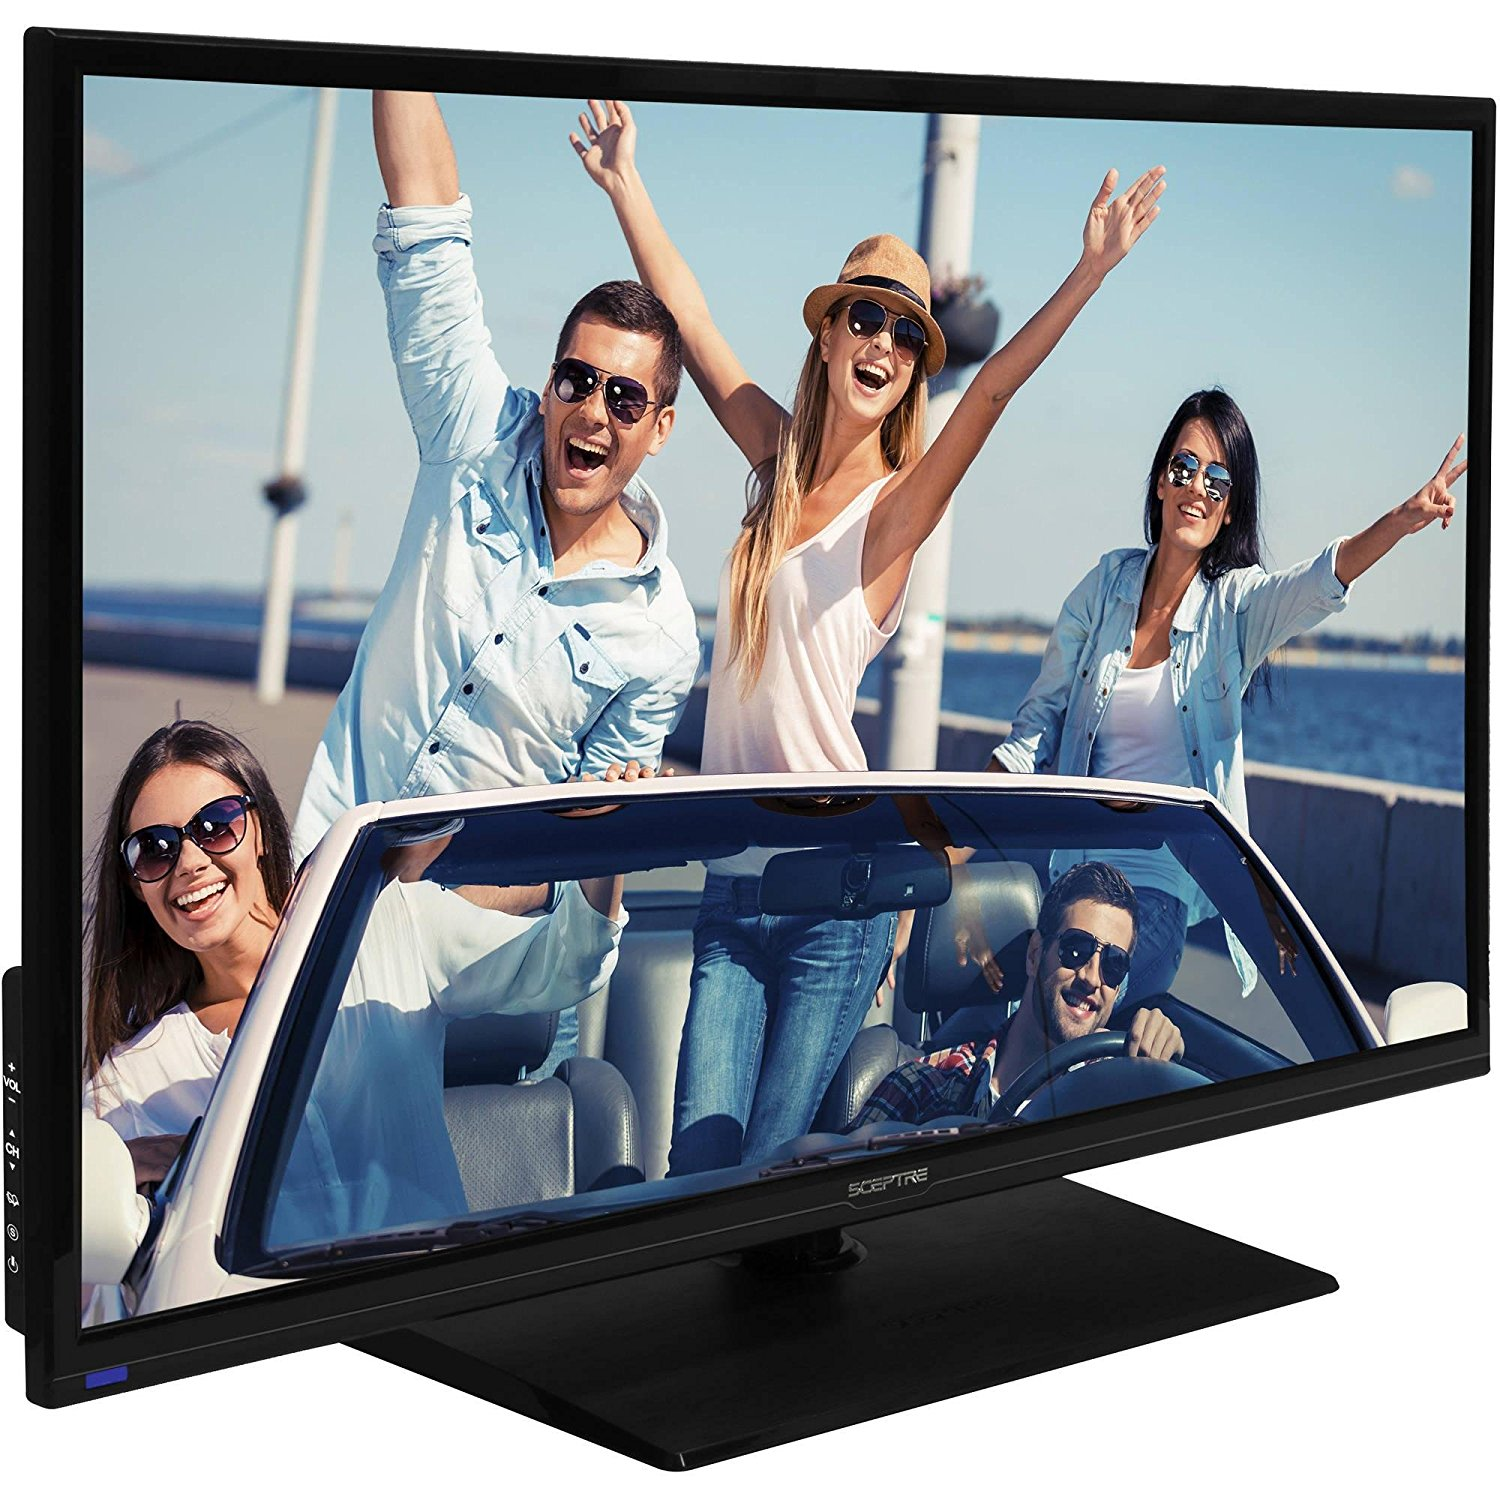 An image of Sceptre E325BD-F 32-Inch FHD LED TV